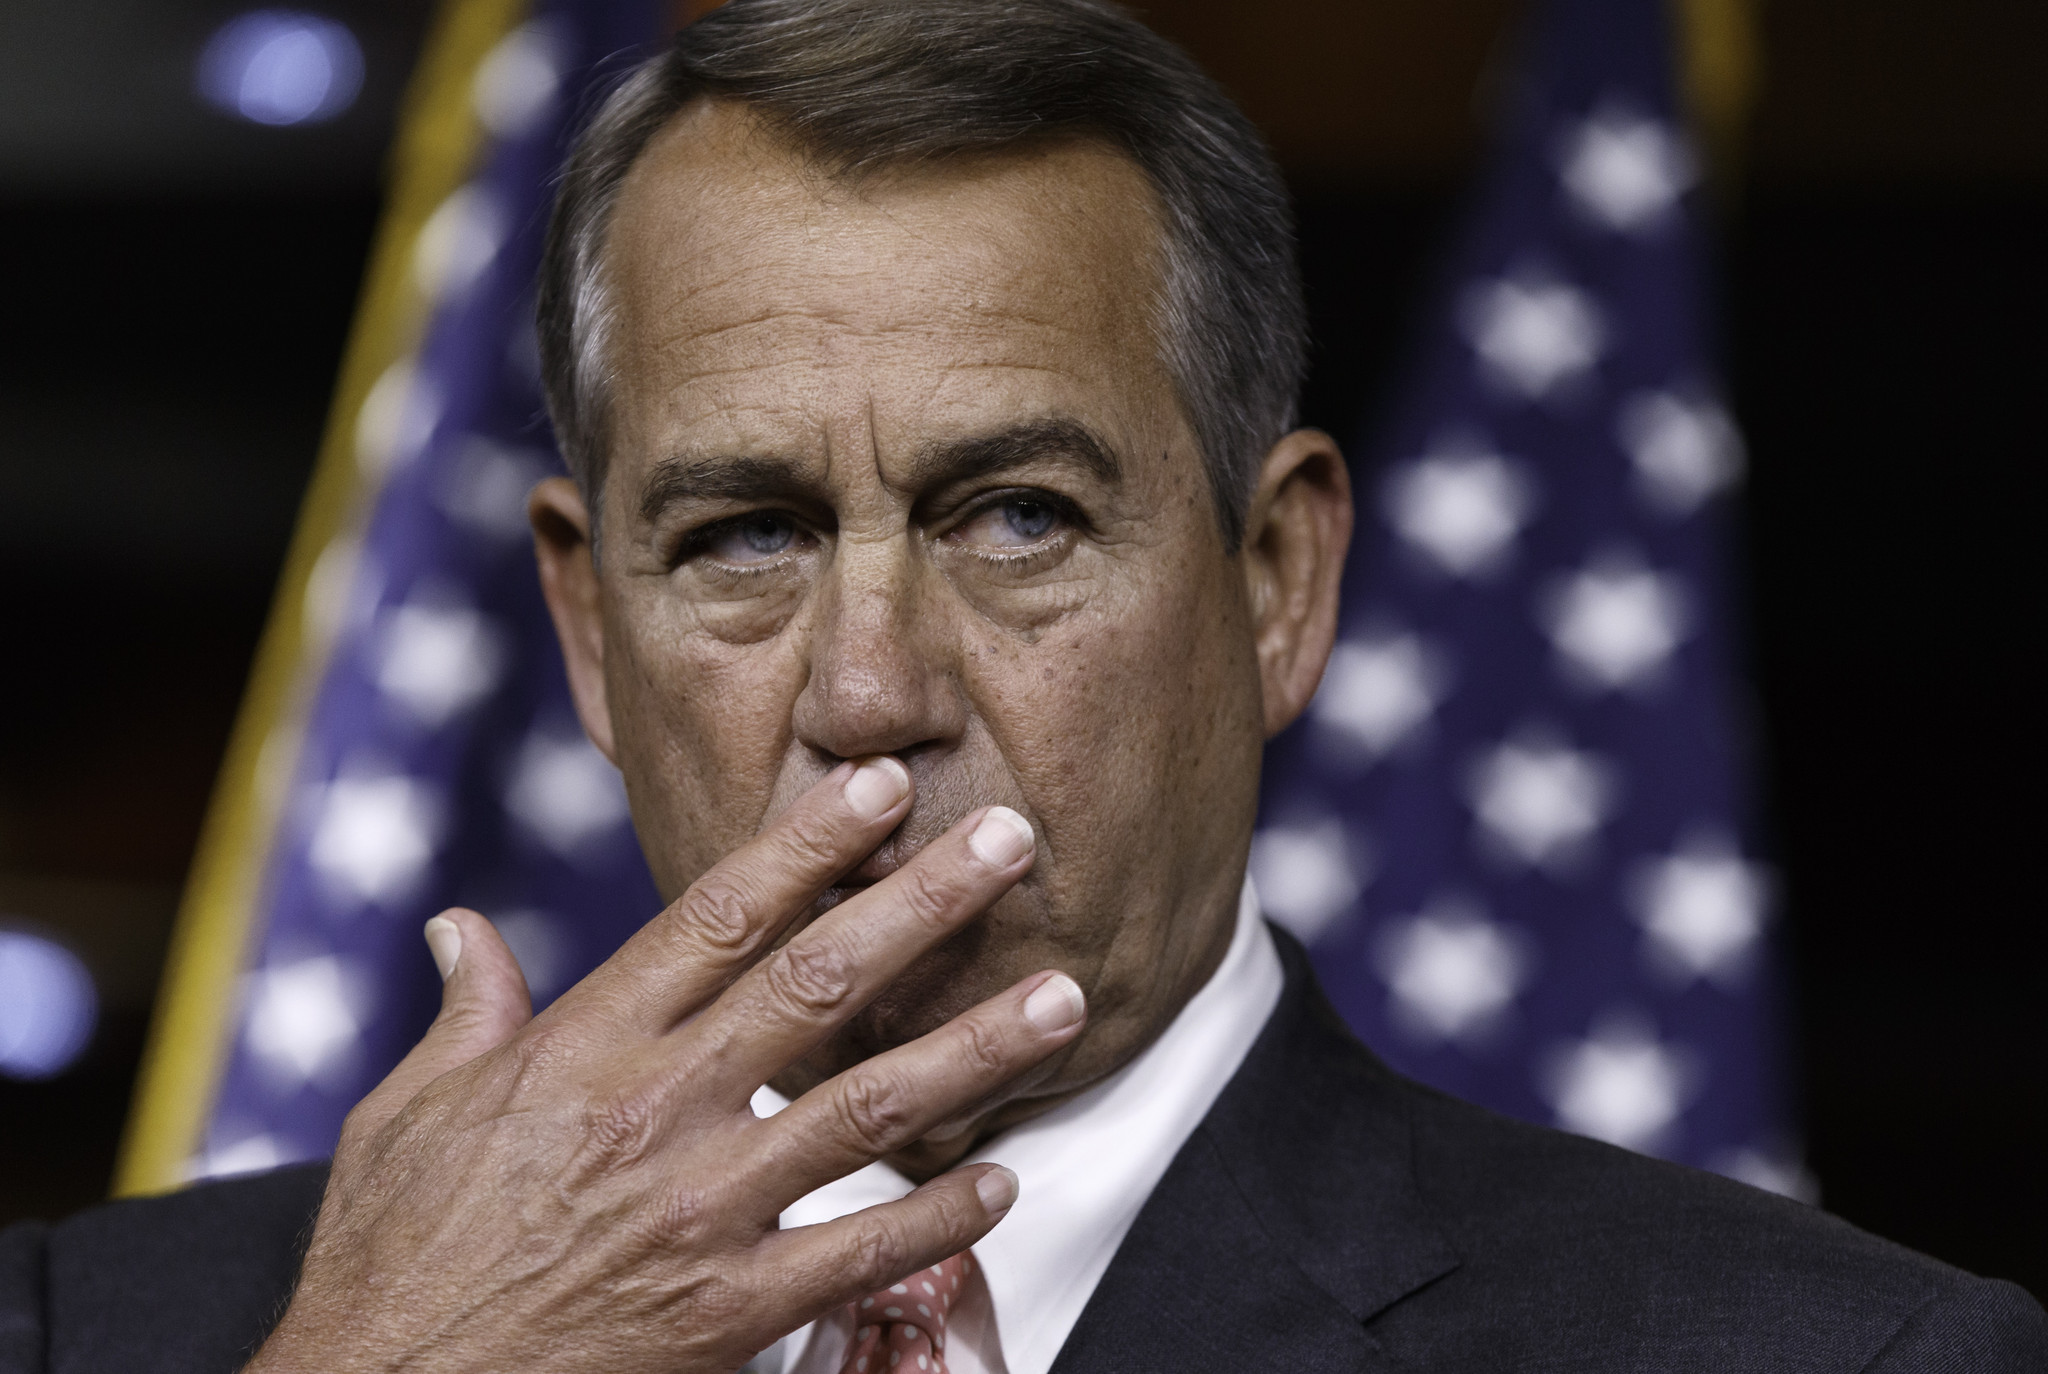 RELATED: House GOP urges Obama to act unilaterally on border, while suing him for acting unilaterally on ACA